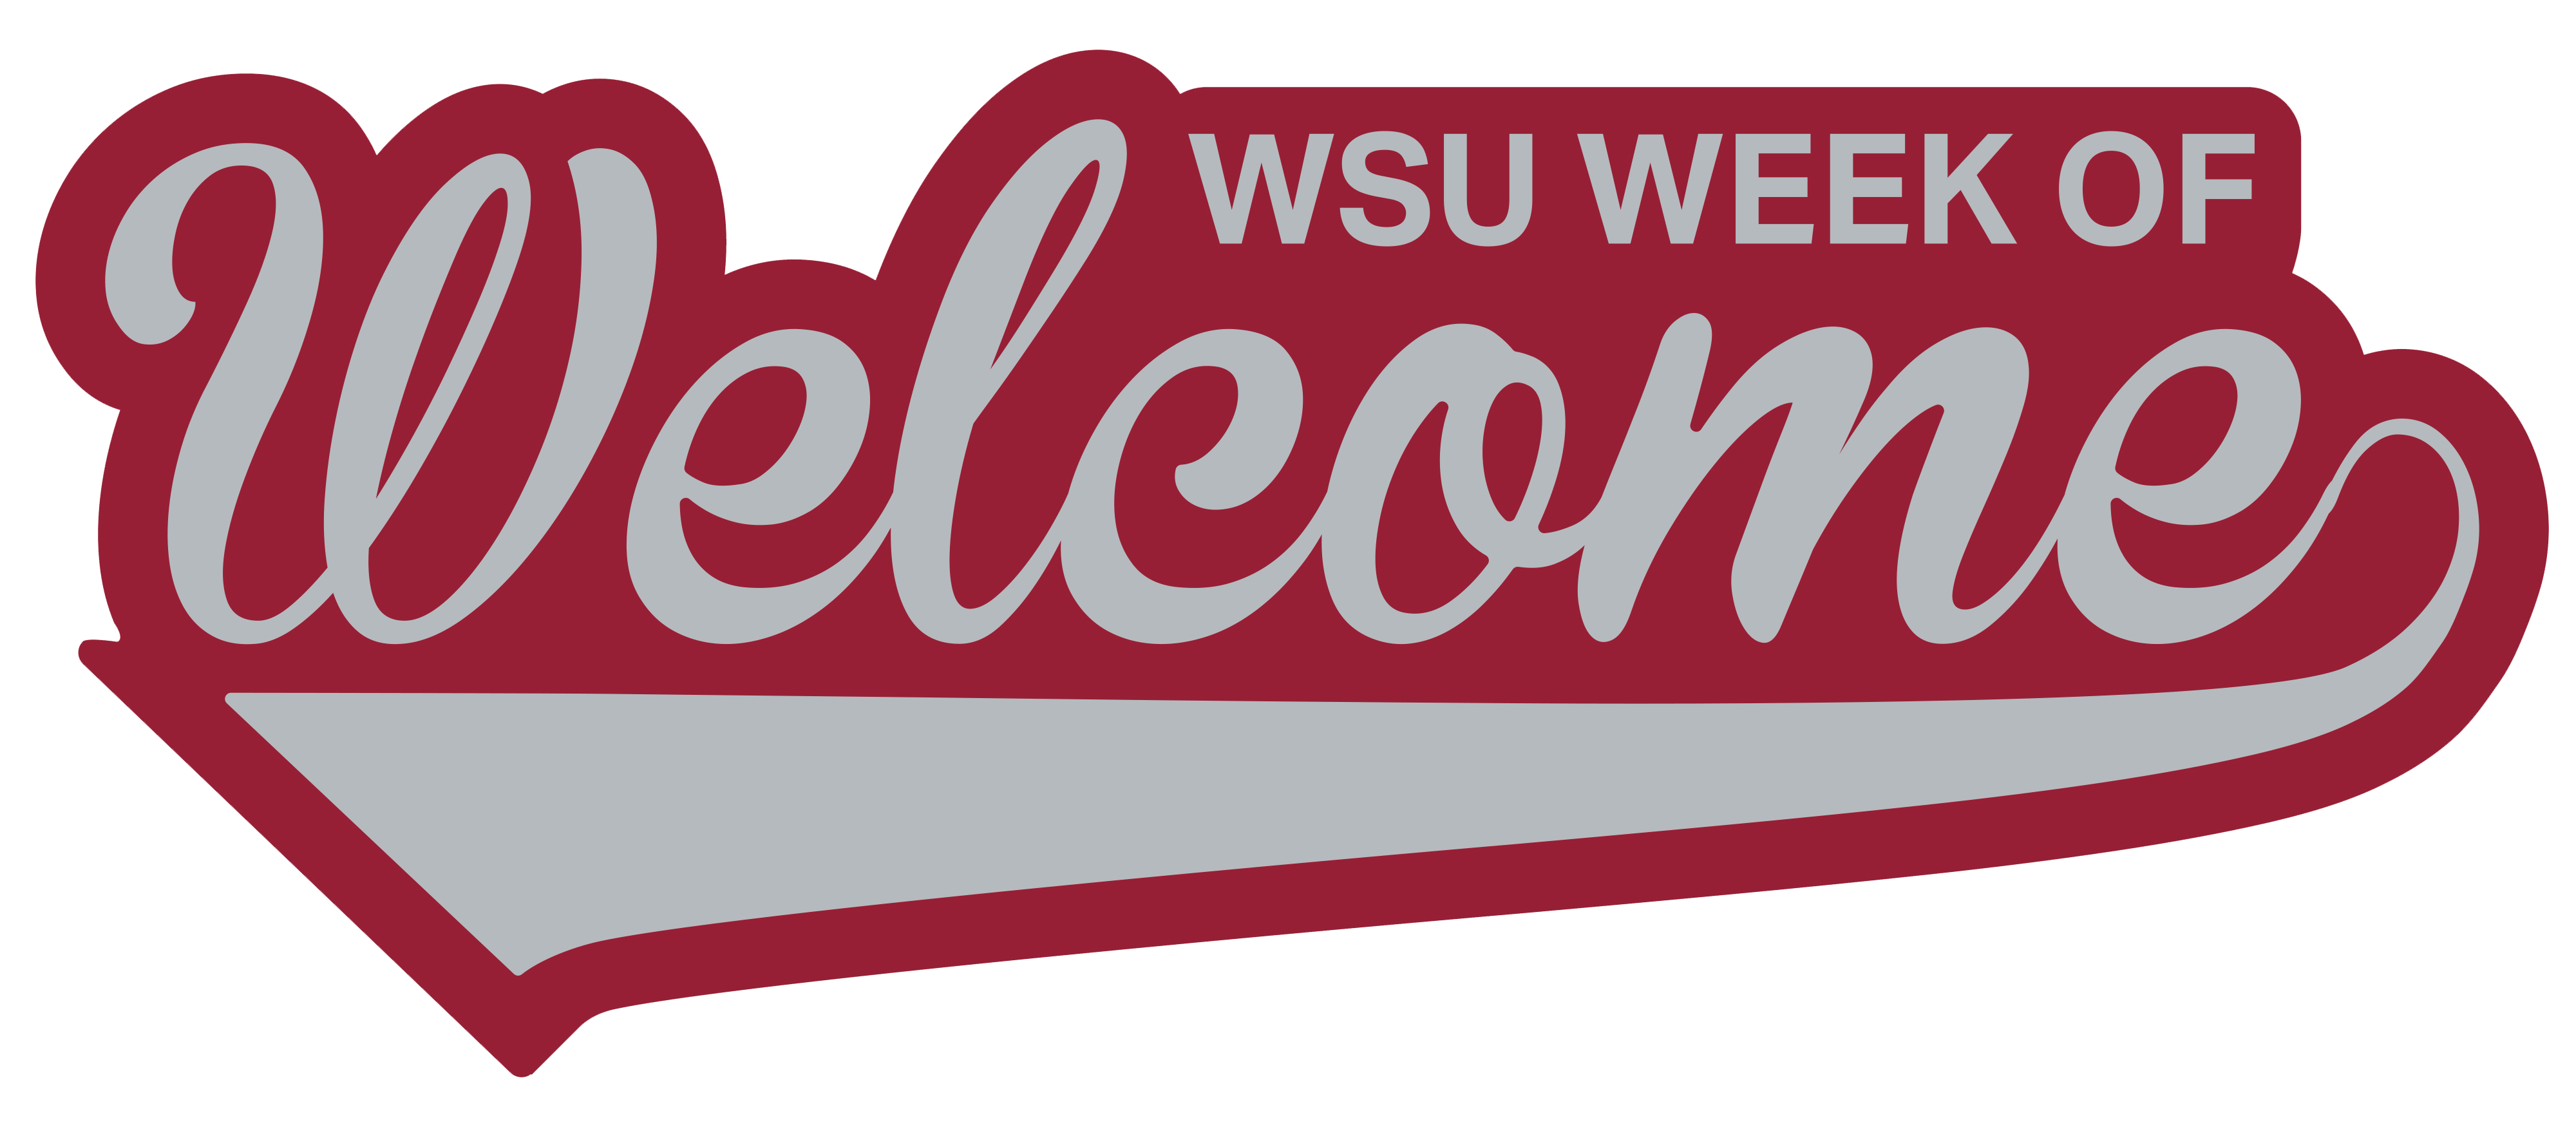 wsu week of welcome png washington state university #38372